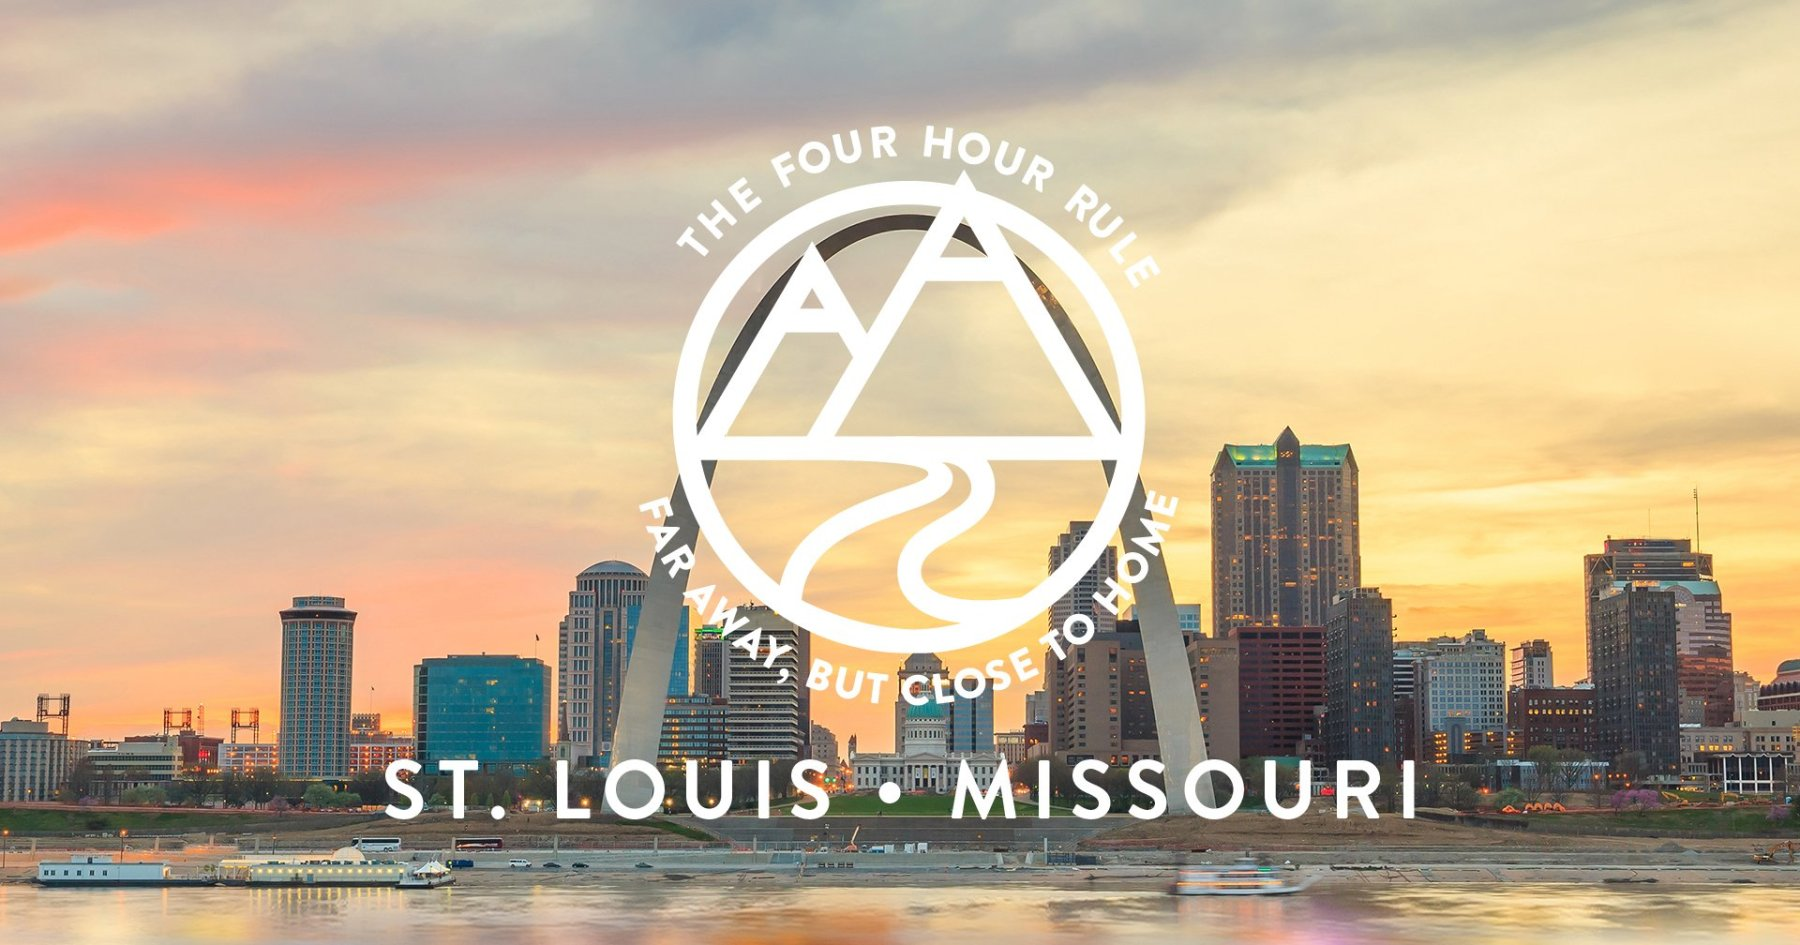 The Four Hour Rule: St. Louis